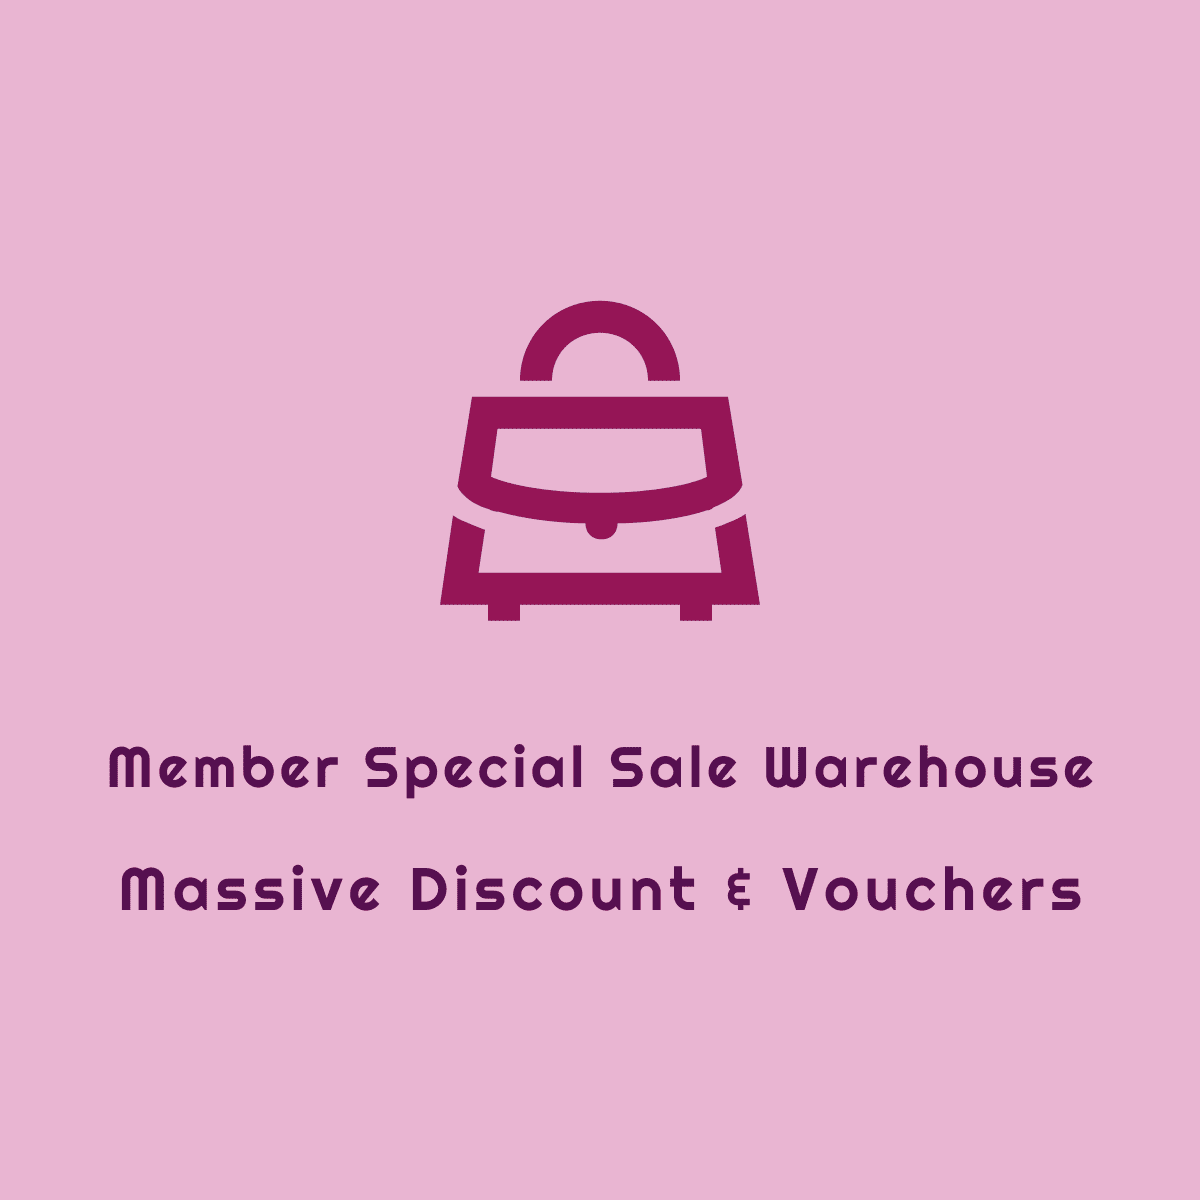 Member Special Sale Warehouse